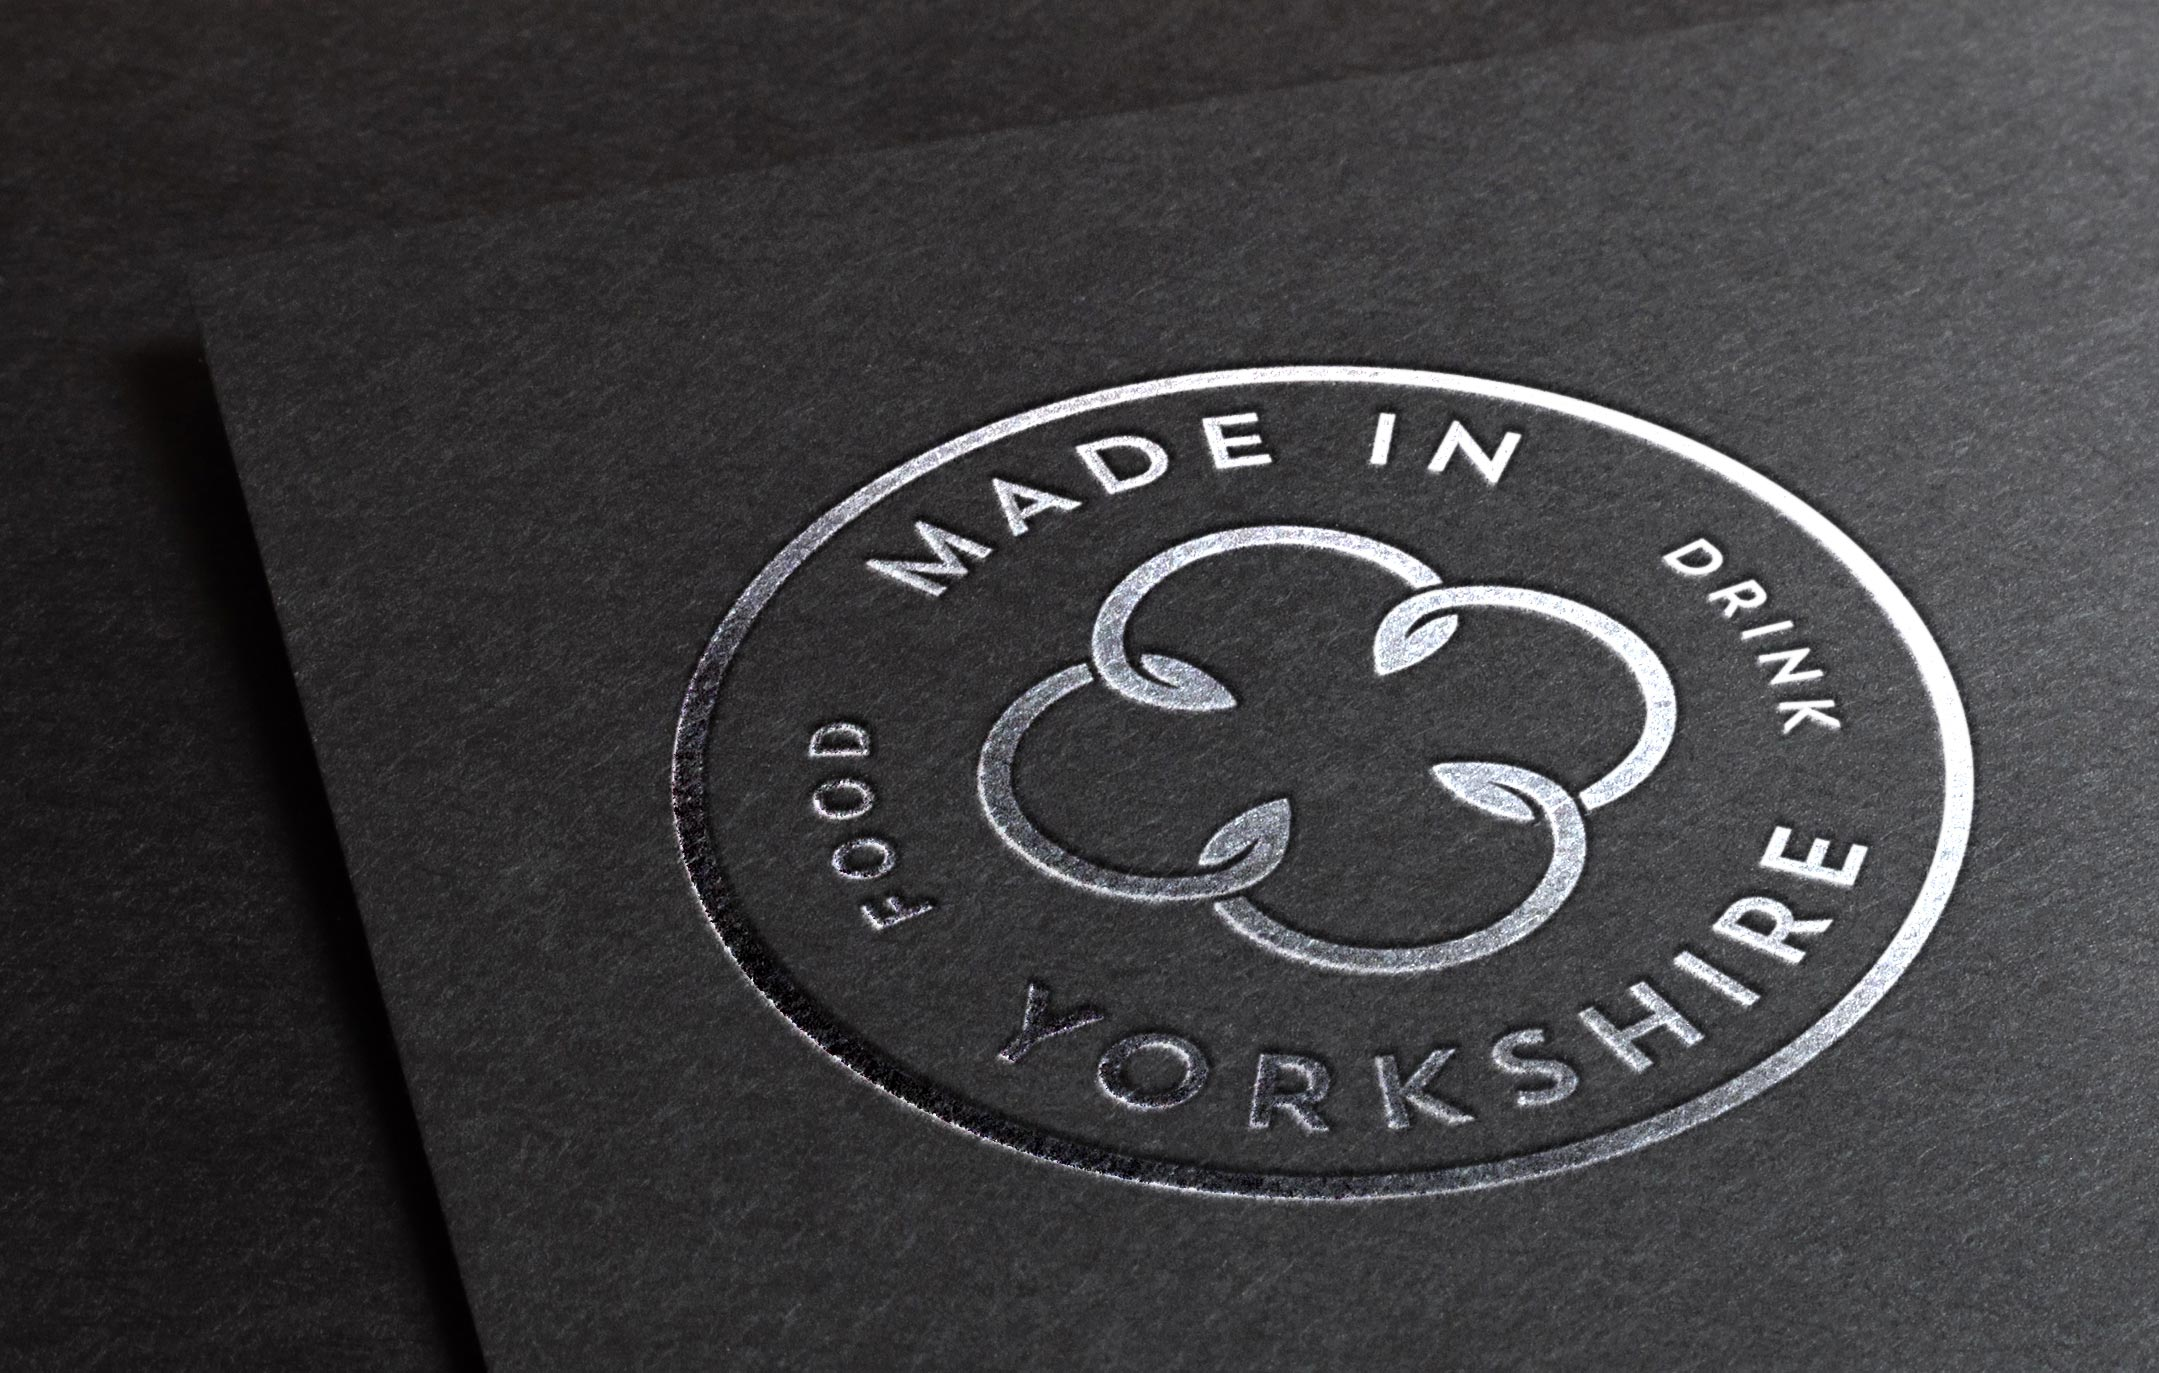 Made In Yorkshire embossed logo on card